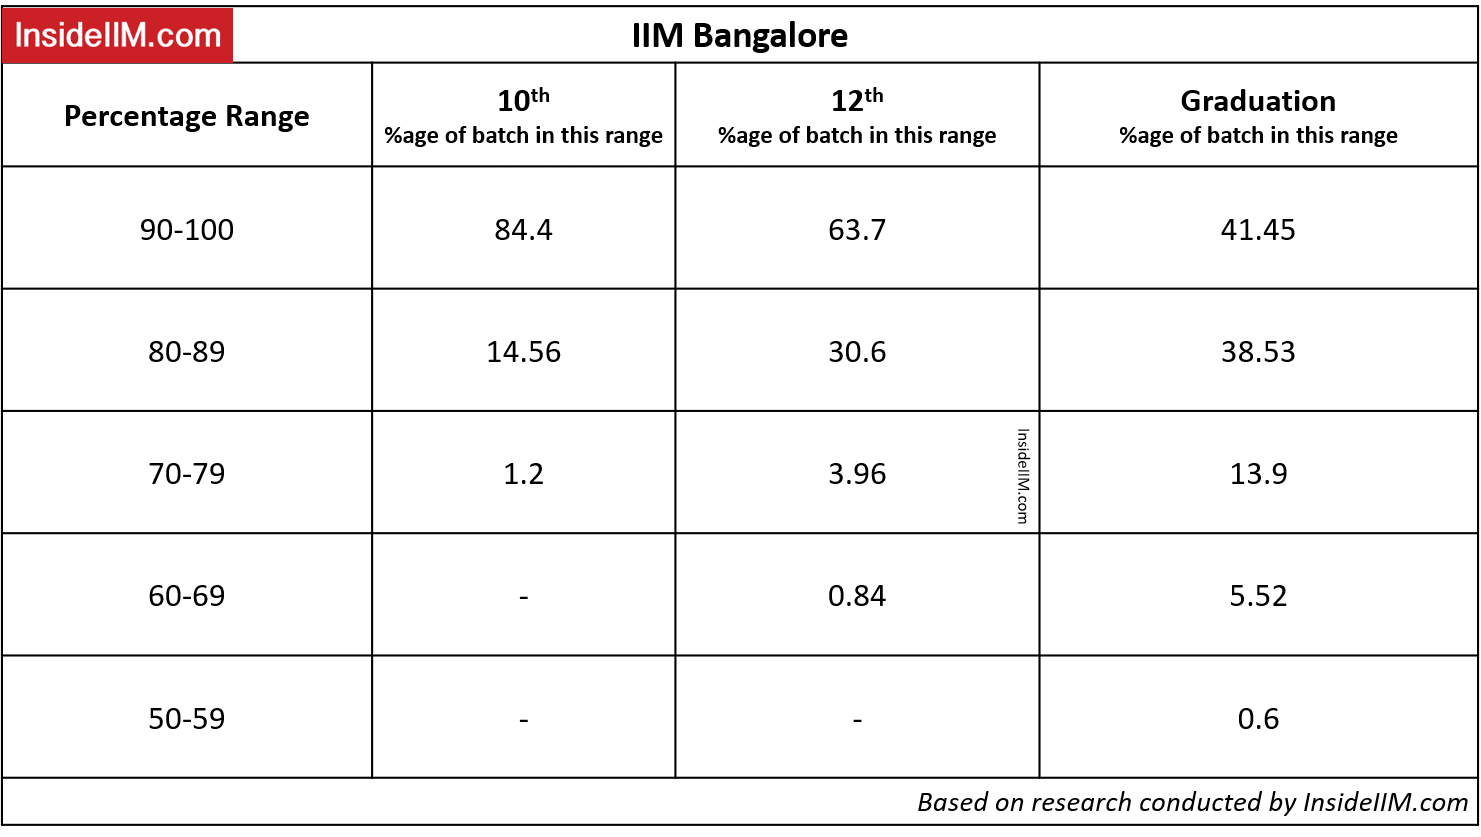 IIM Academic Profile - IIM Bangalore Academic Profile Requirements